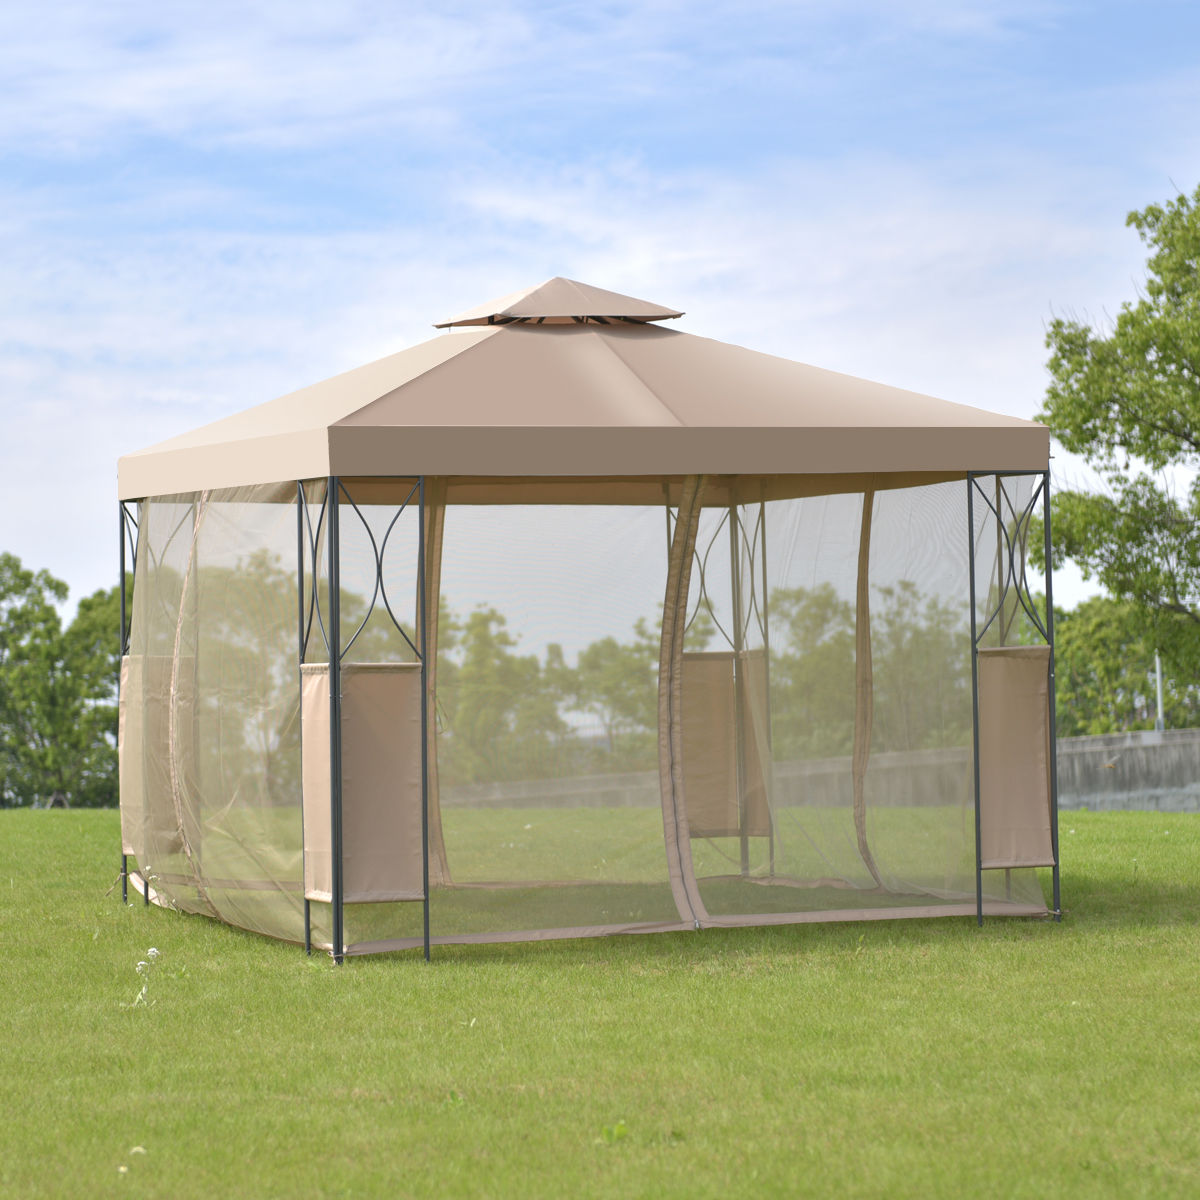 Goplus 2 -Tier 10 'X10 'Gazebo Canopy Tent Shelter Awning Steel Frame Patio Garden Party Wedding Tent Brown Cover OP3116CF моторное масло motul garden 4t 10w 30 2 л